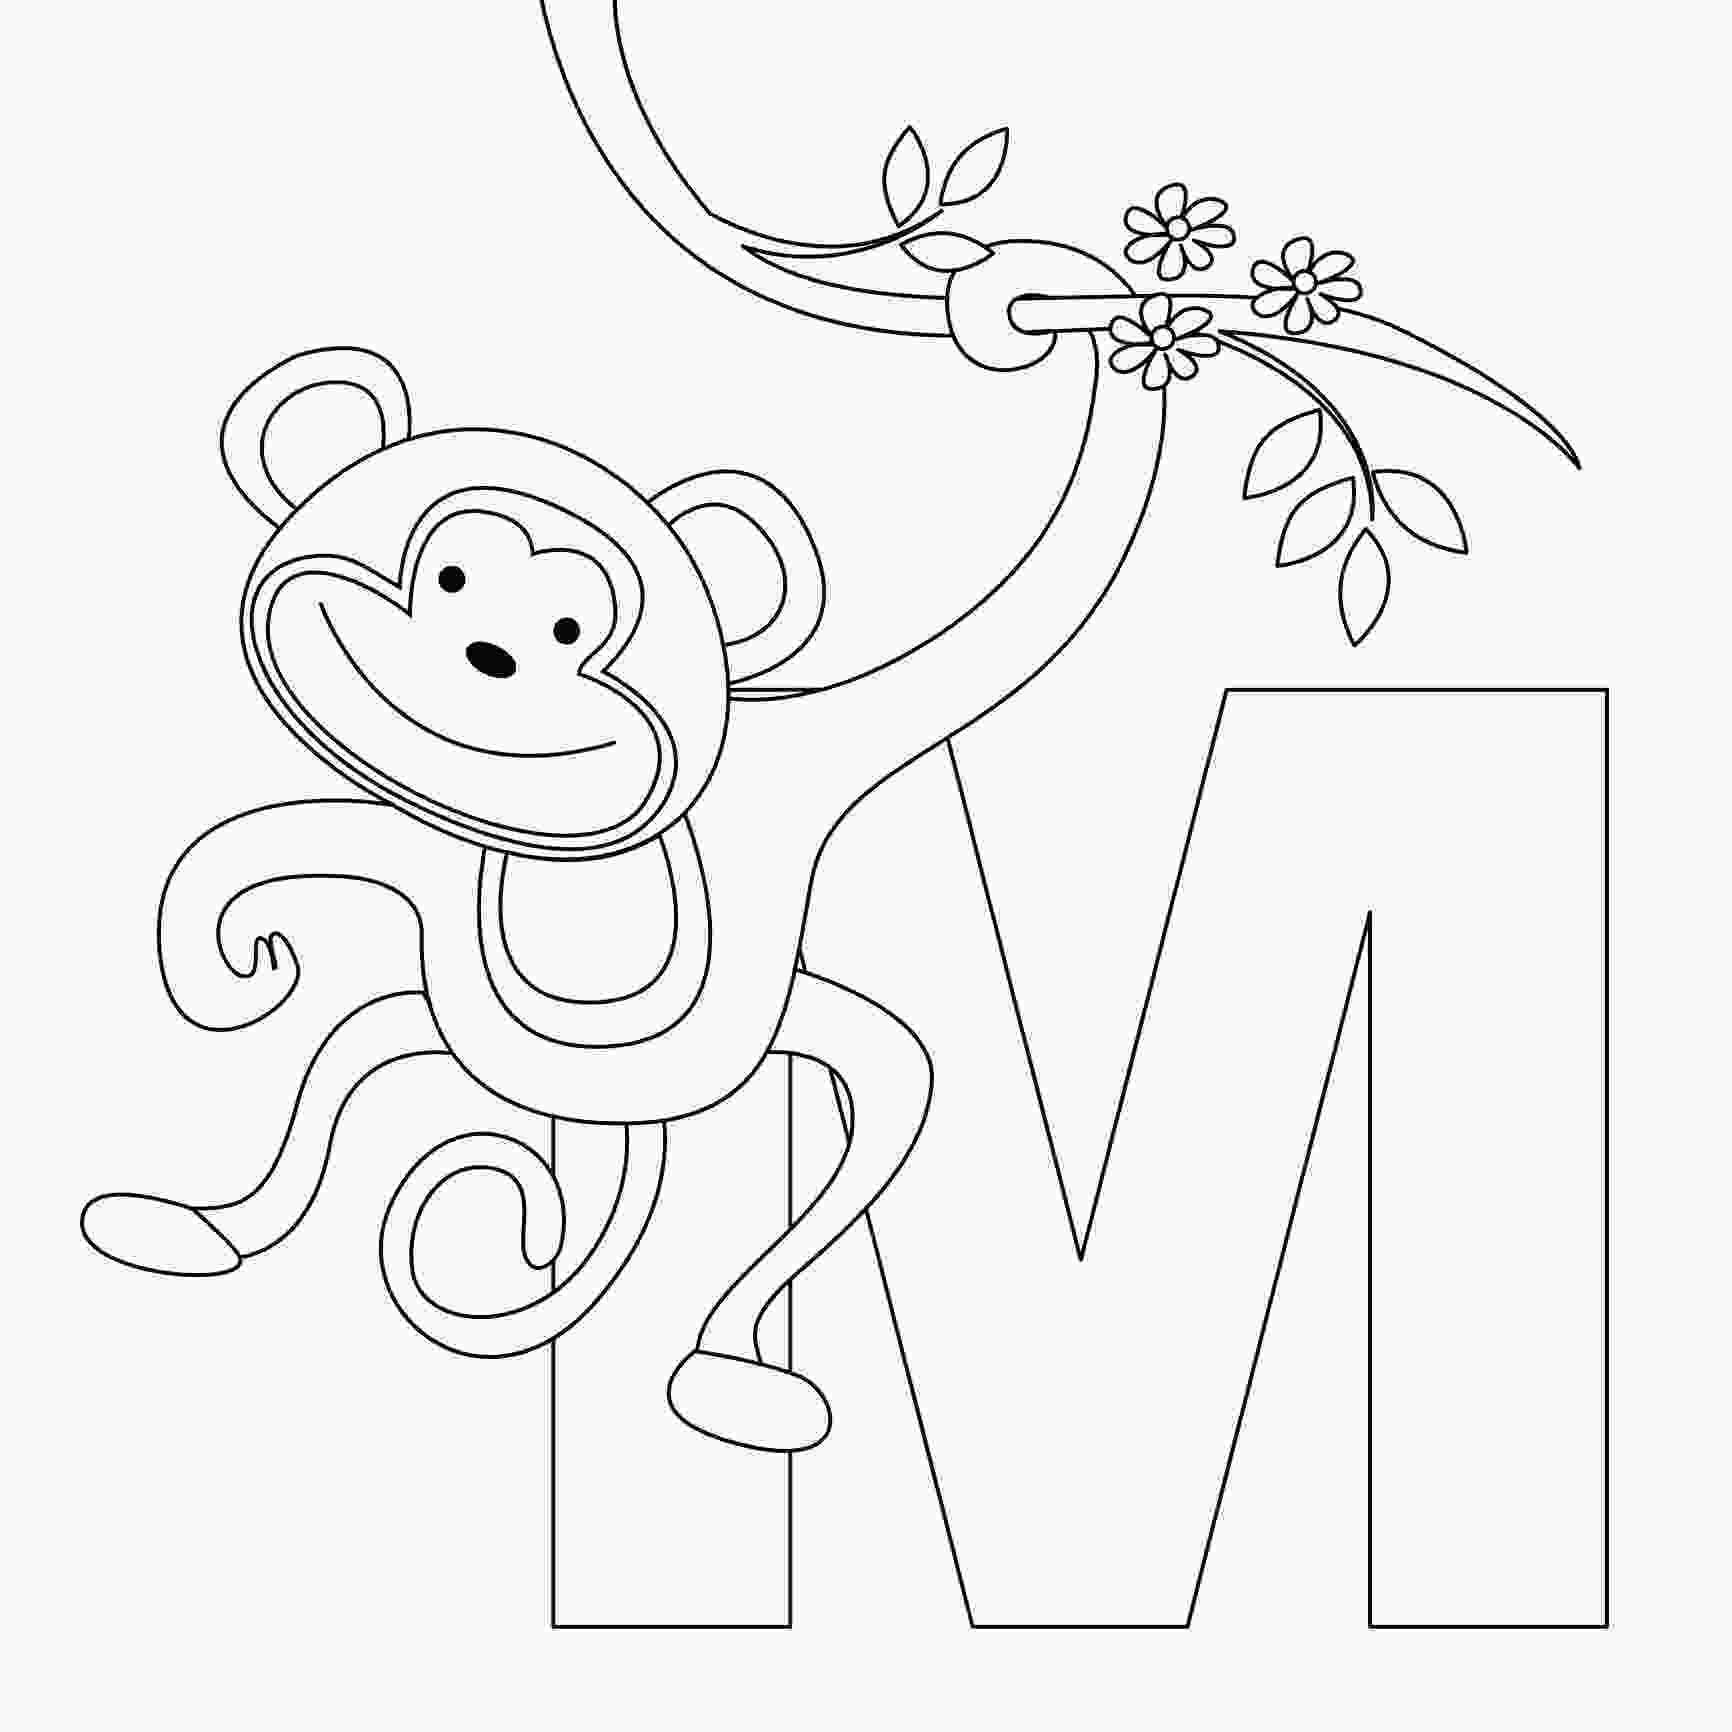 42 Printable Colouring Alphabet In